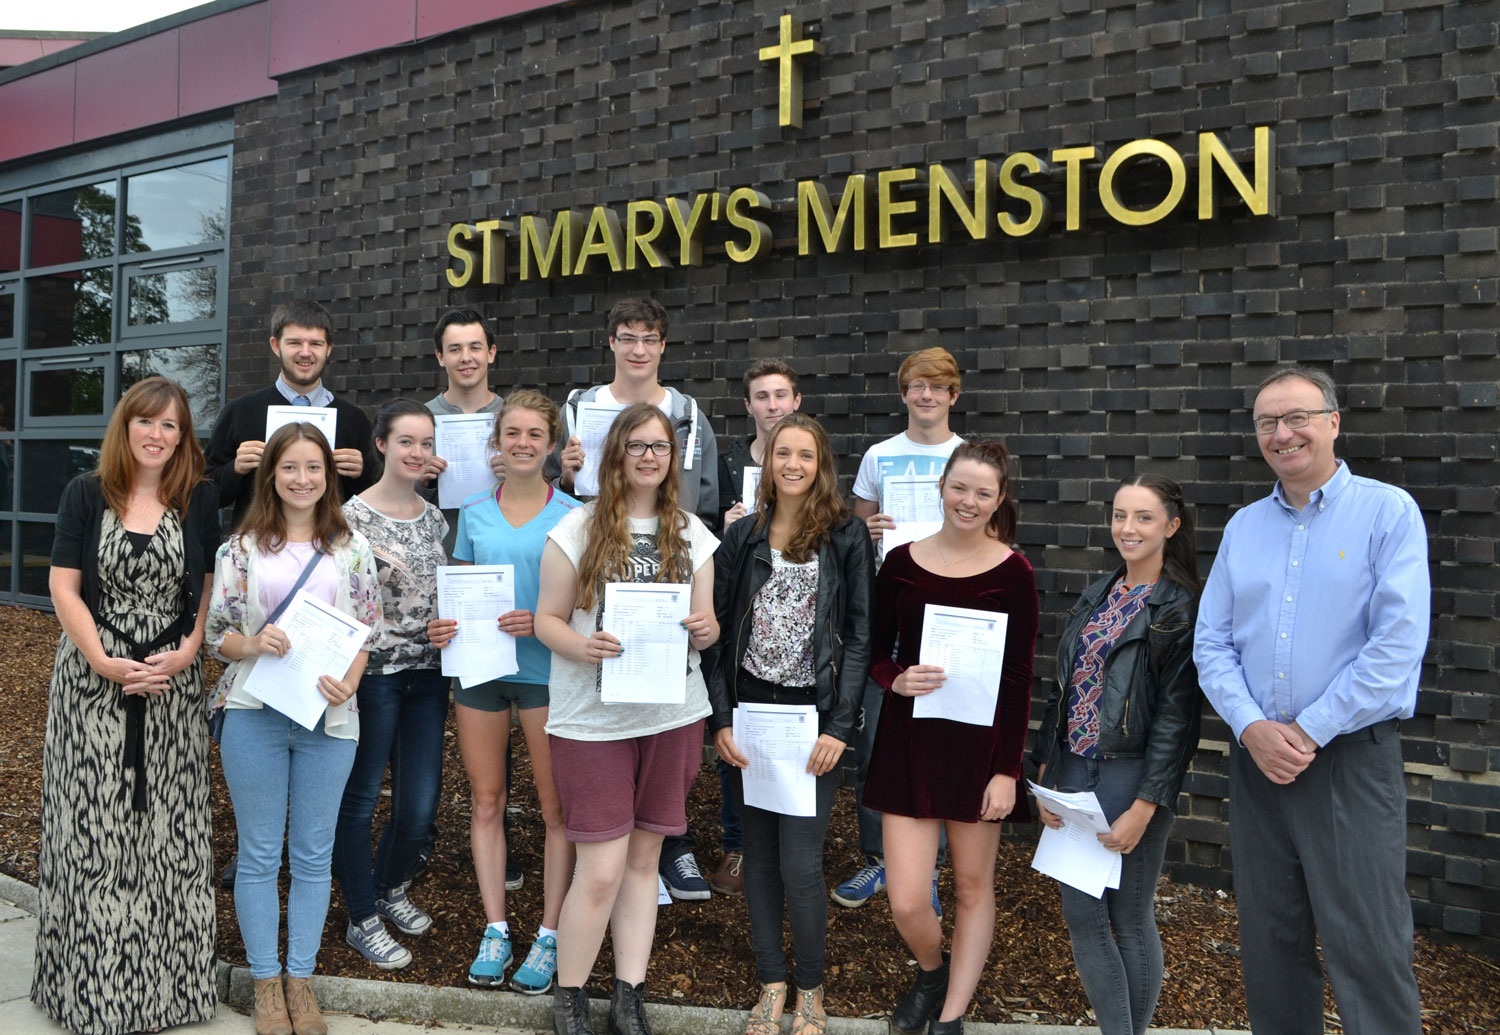 Photo: Acting Headteachers Miss C Garrett And Mr T Rothwell join Year 13 pupils for a commemorative photo, A-Level Results Day, Thursday 14 August 2014